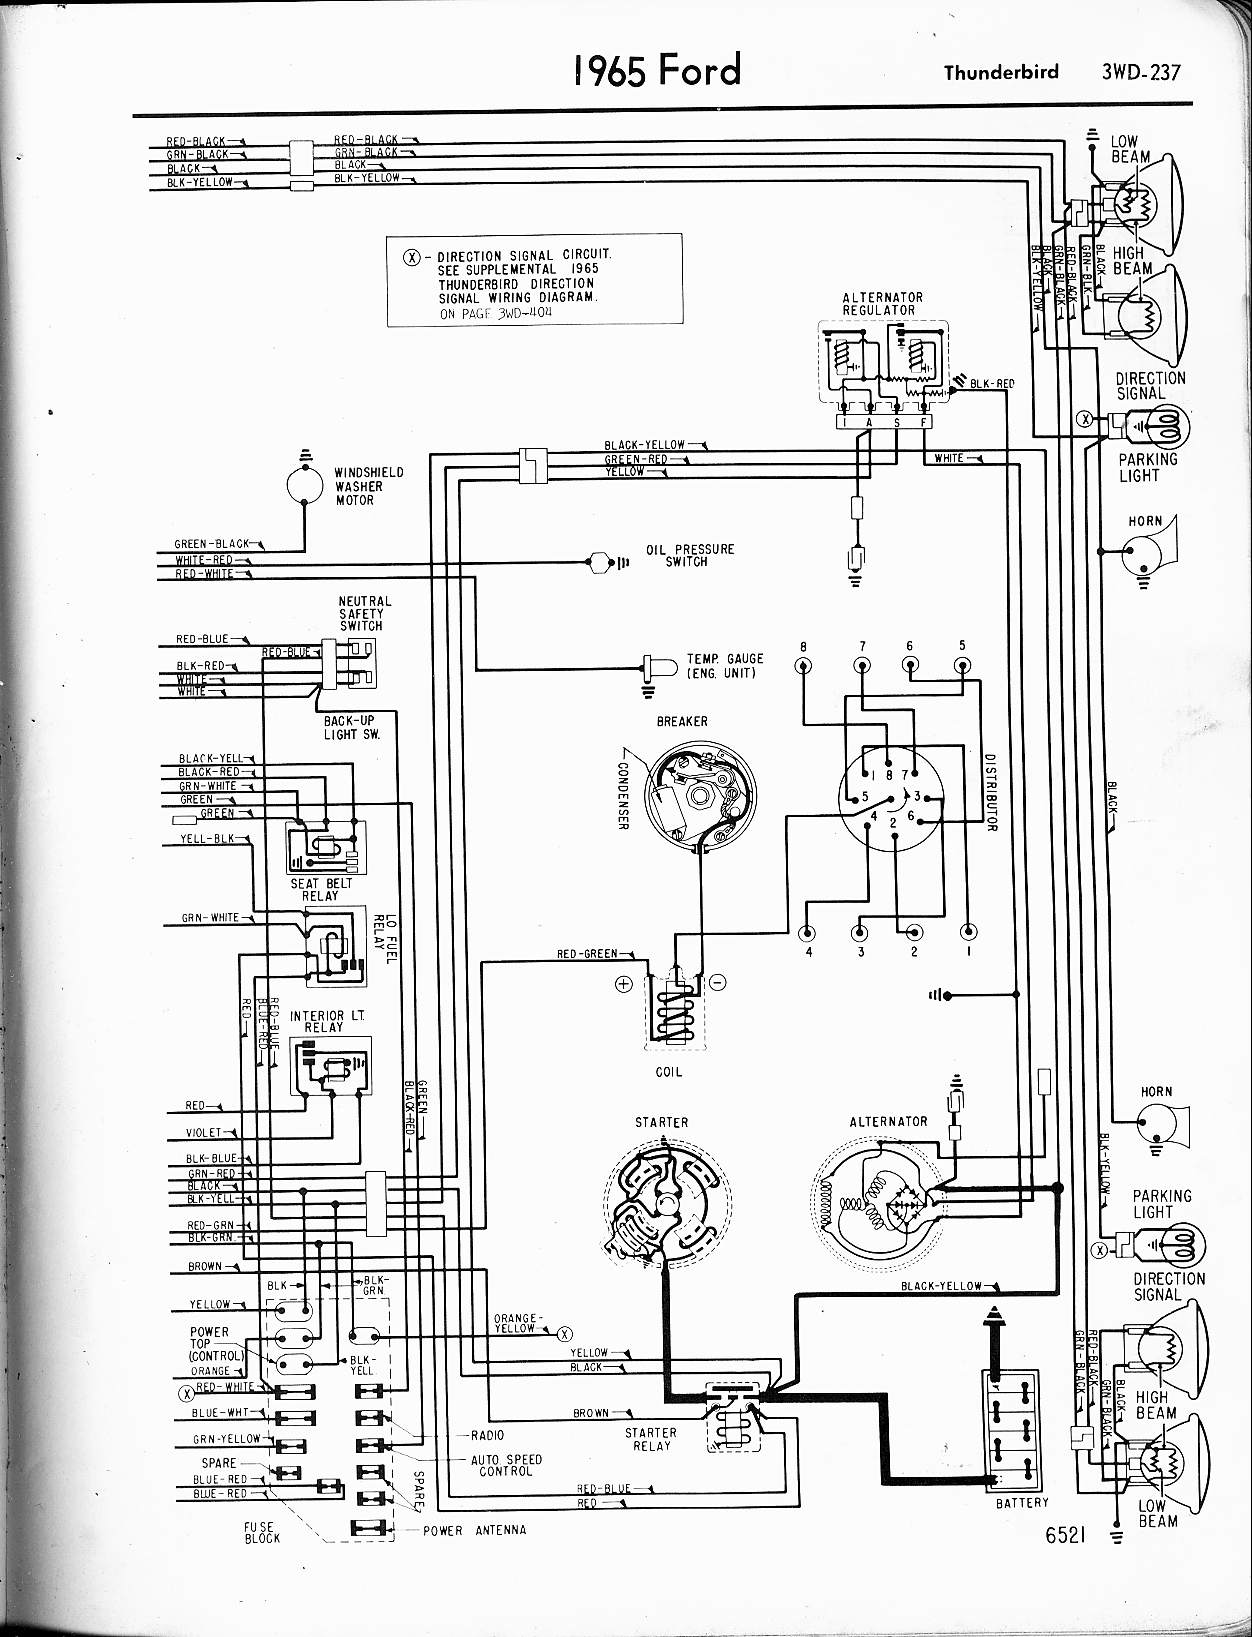 57 65 ford wiring diagrams wiring-diagram 1964 thunderbird accessories 1957 thunderbird power window wiring diagram #9